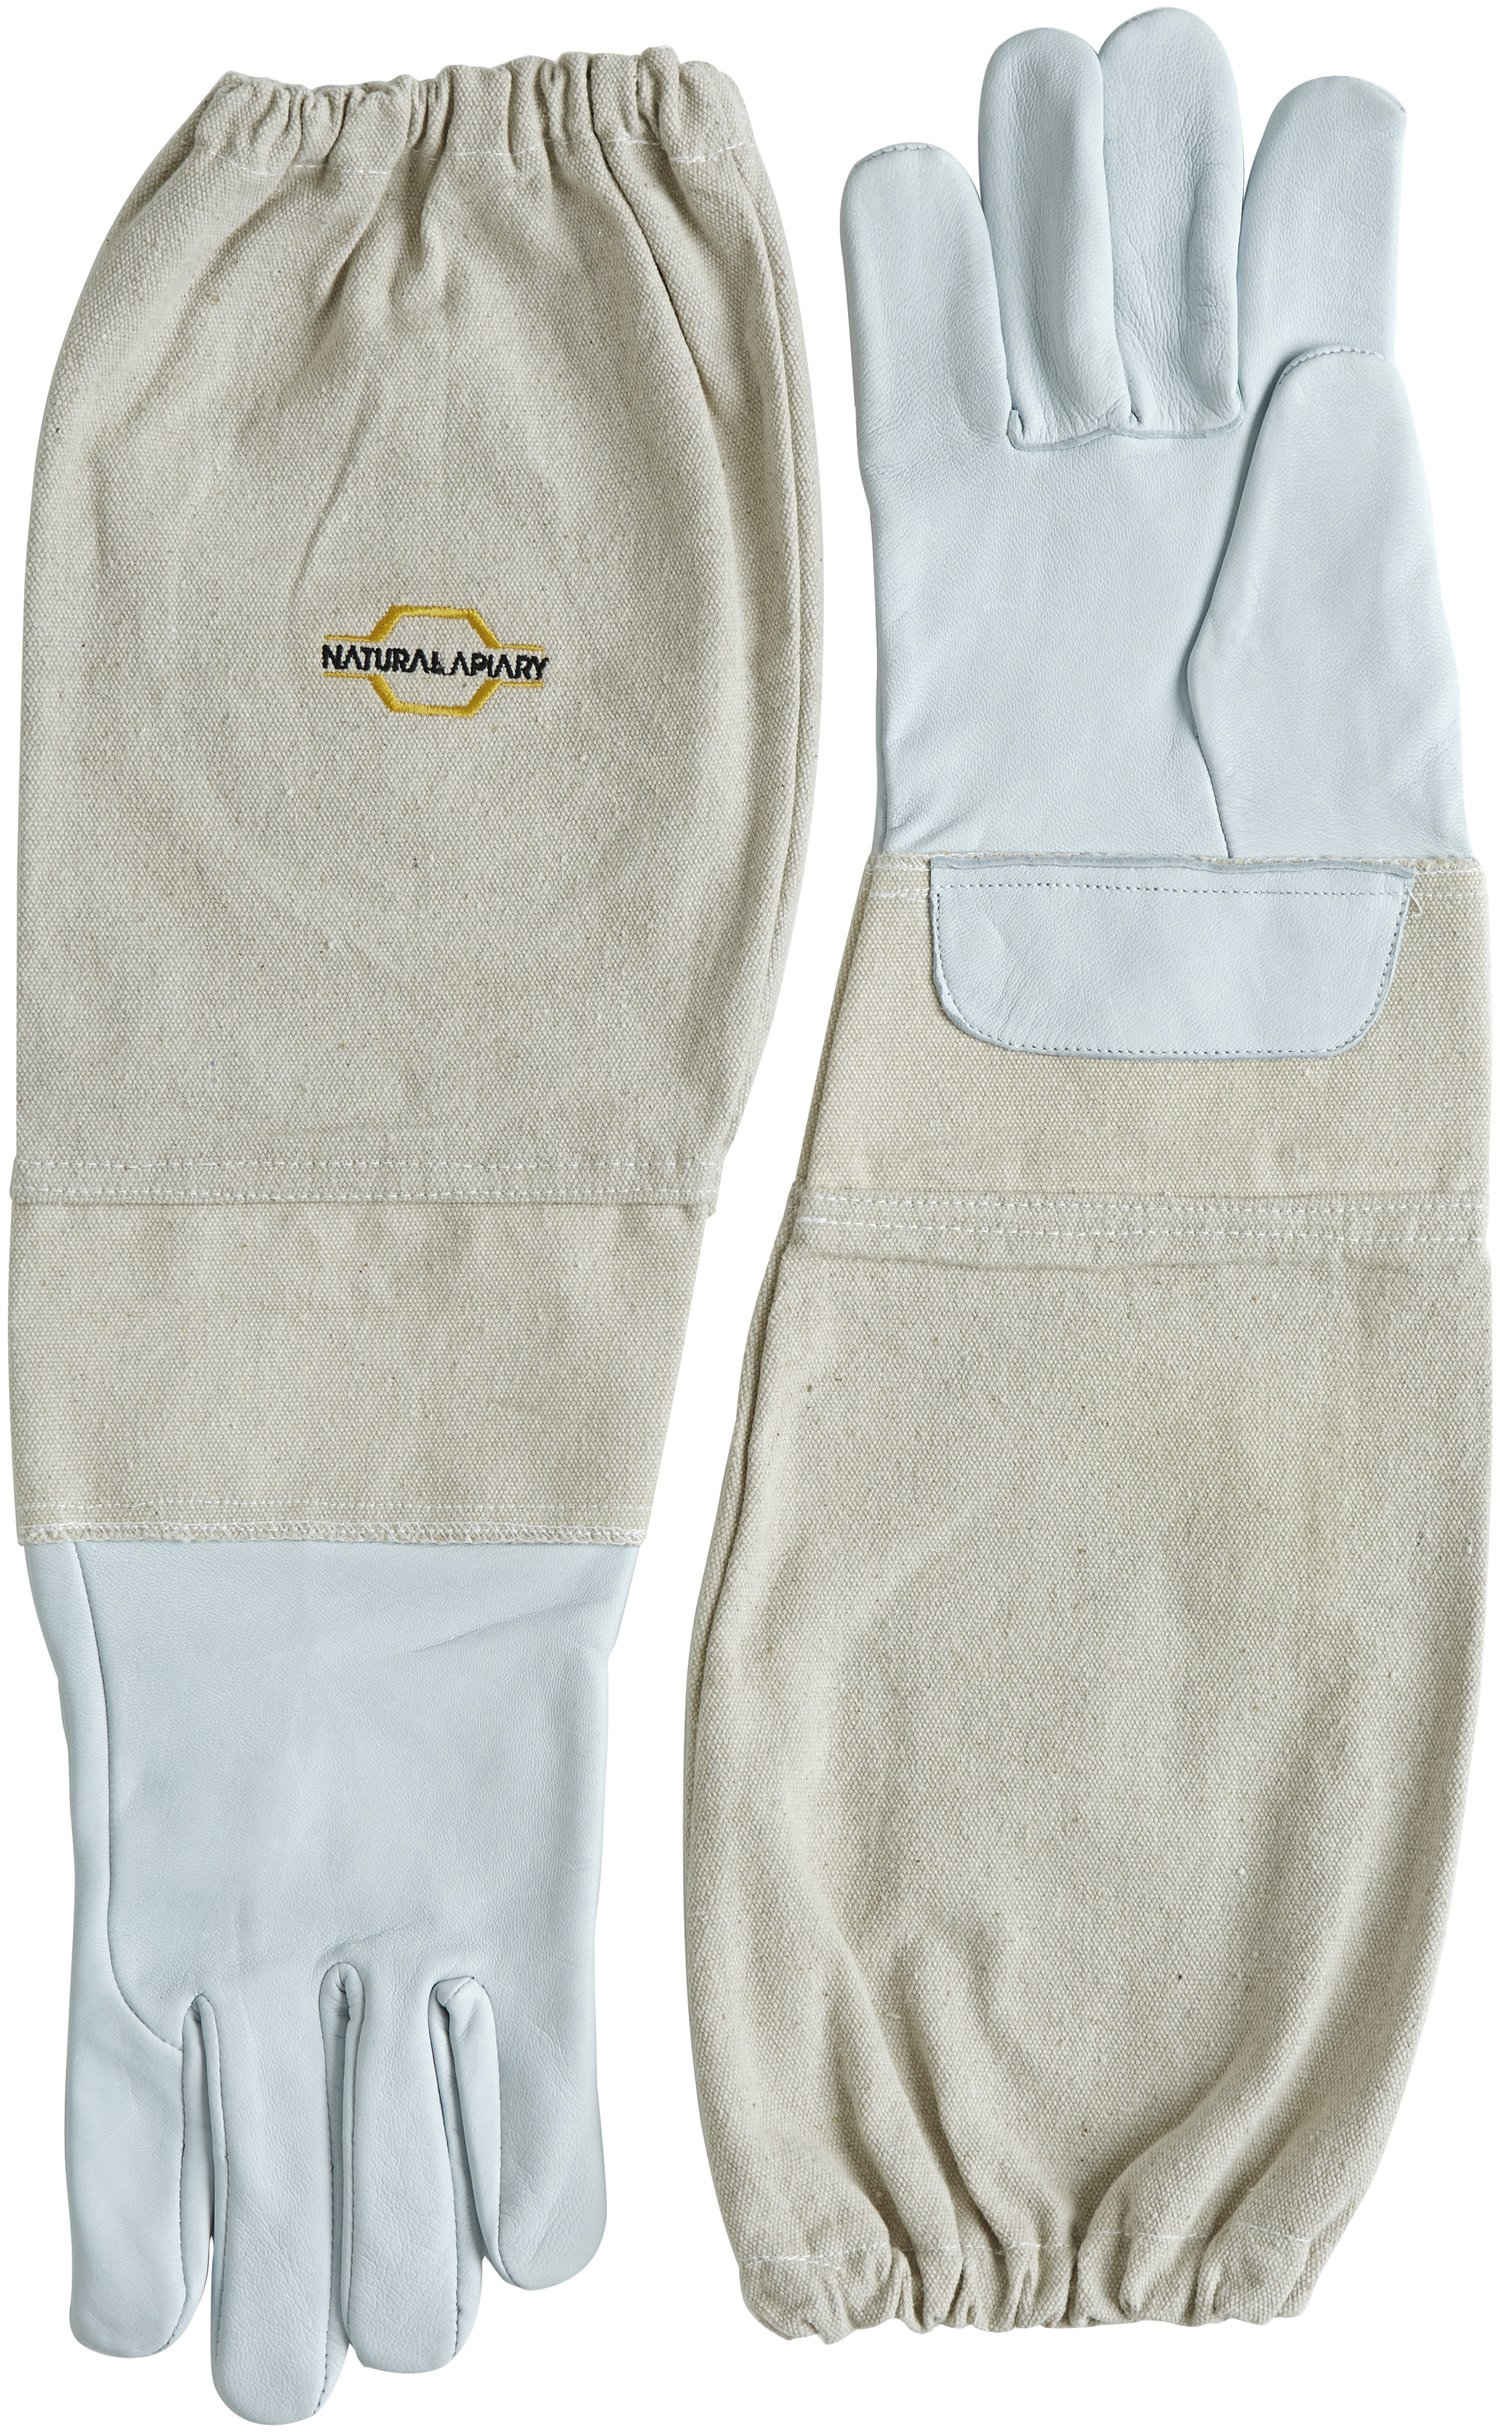 Natural Apiary Goatskin - Beekeeping Gloves - Sting Proof Cuffs - Extra Long Extra Long Twill Elasticated Gauntlets - X Large